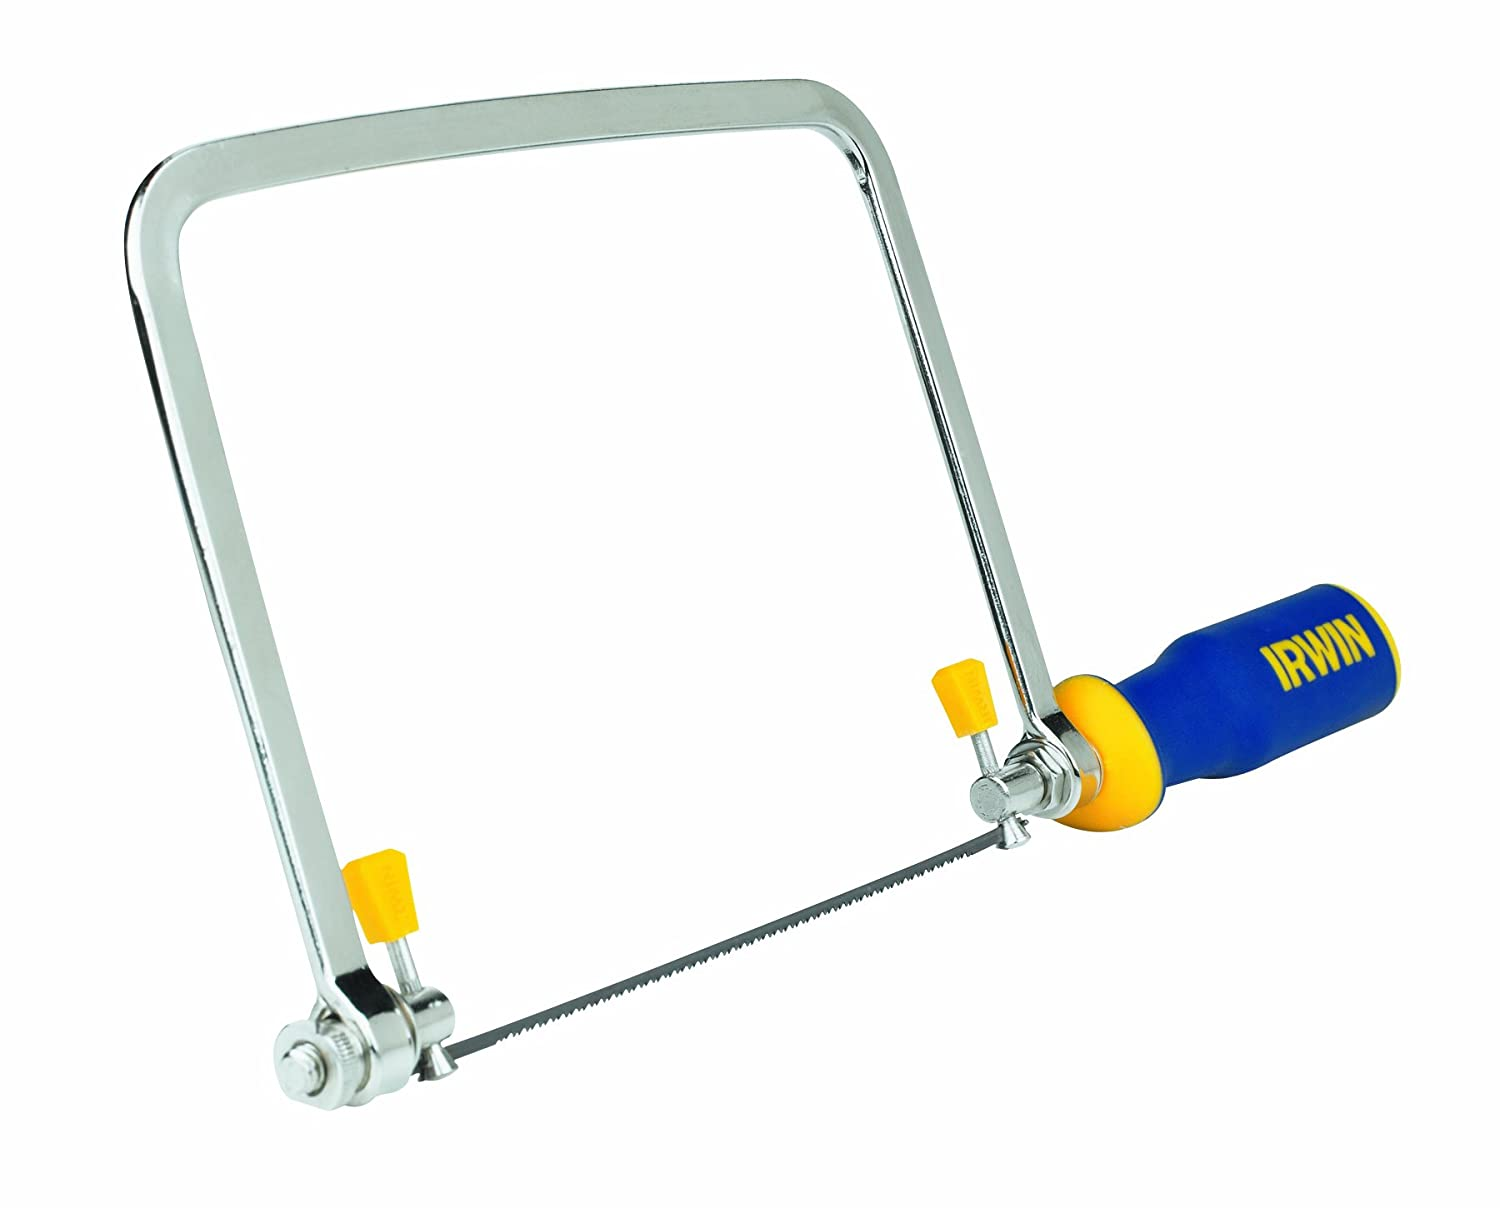 Irwin tools 2014400 pro touch coping saw amazon diy tools greentooth Gallery